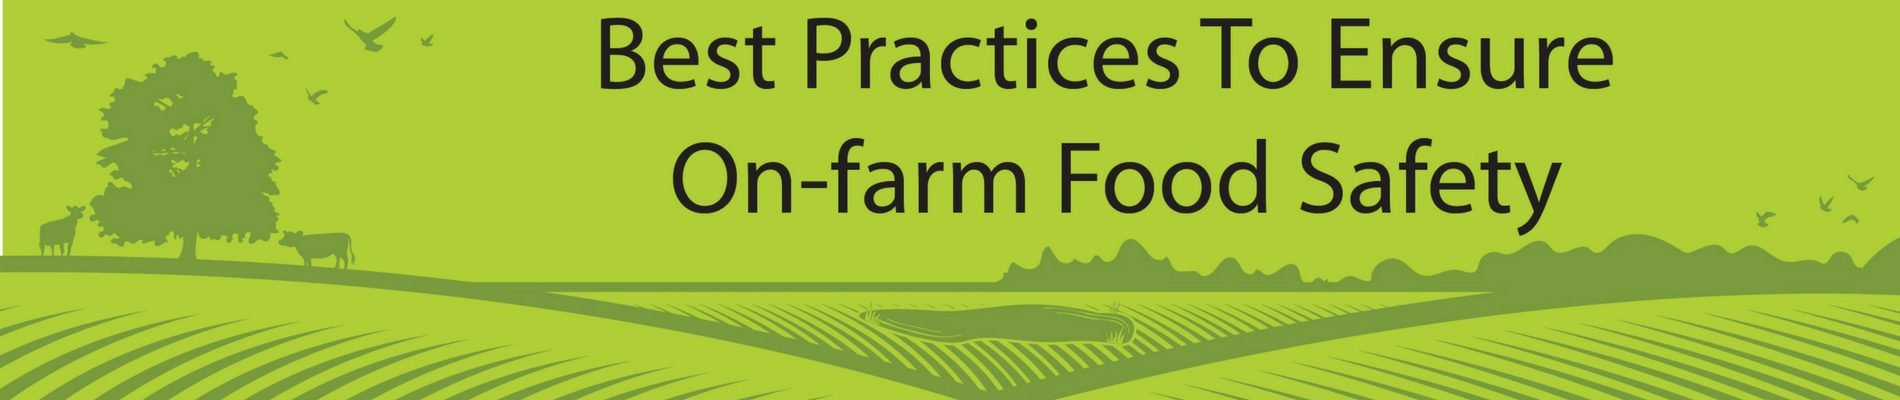 Onfarm food safety banner.jpg thumbnail